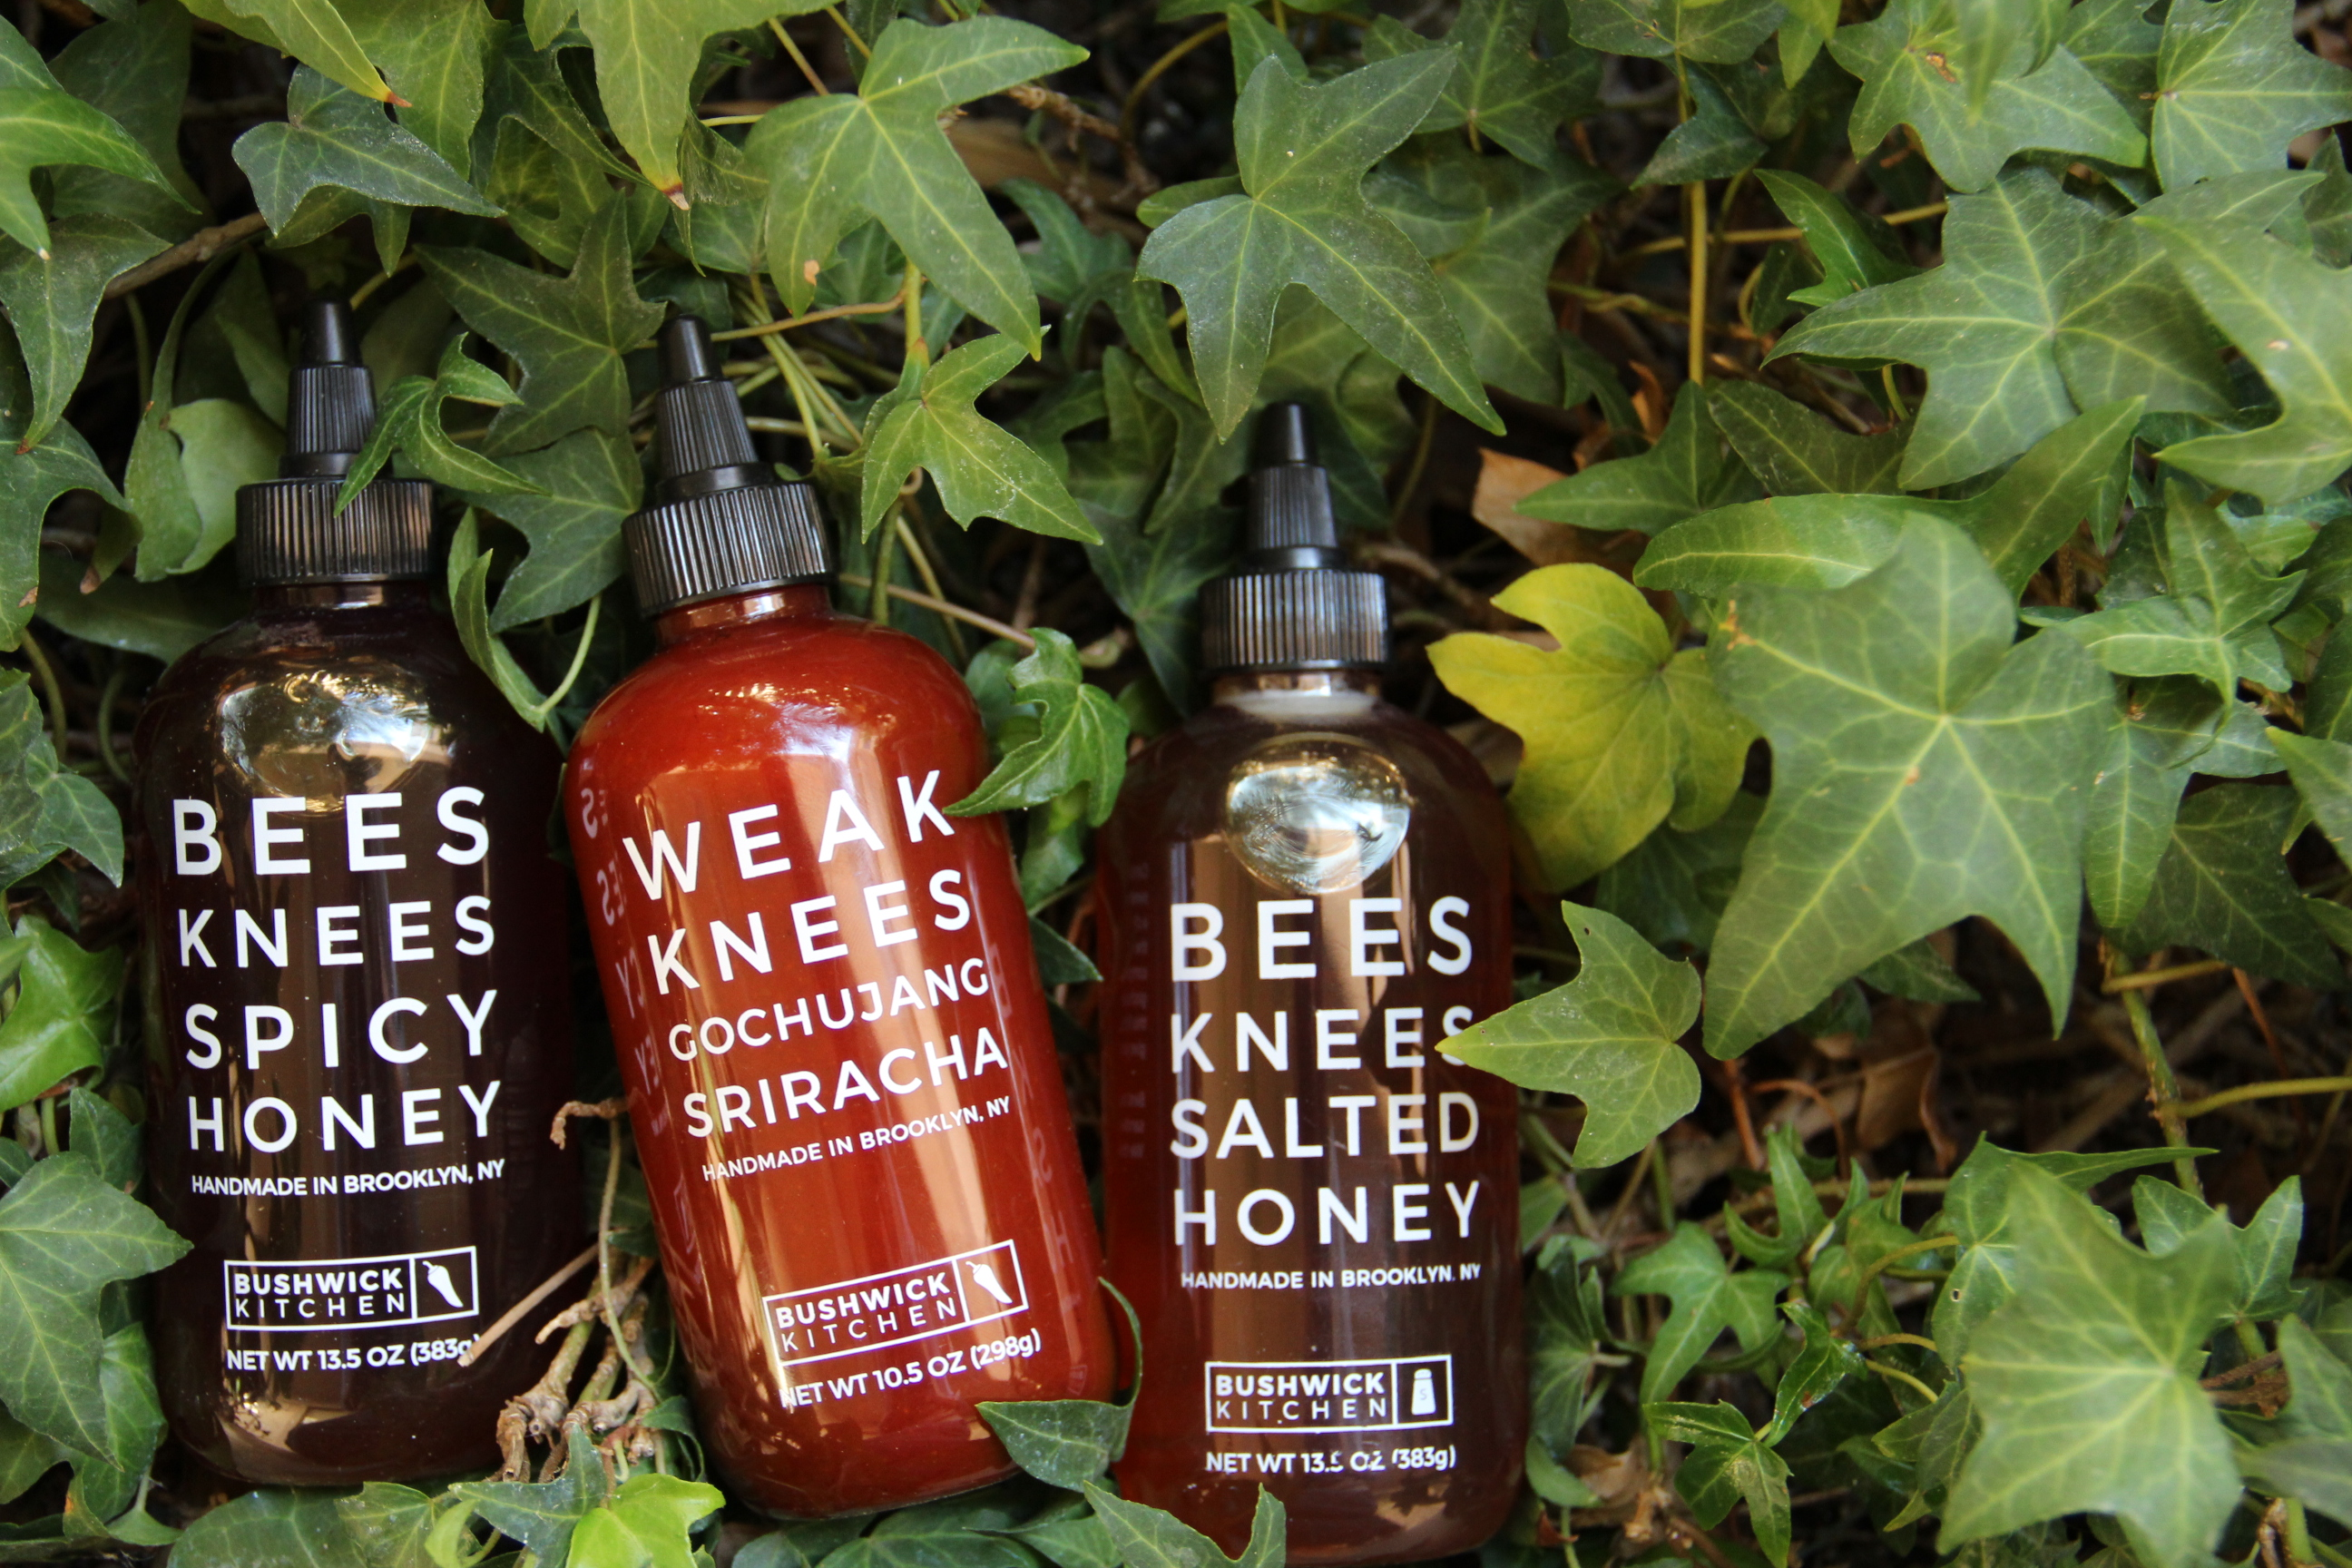 Bushwick Kitchen honey